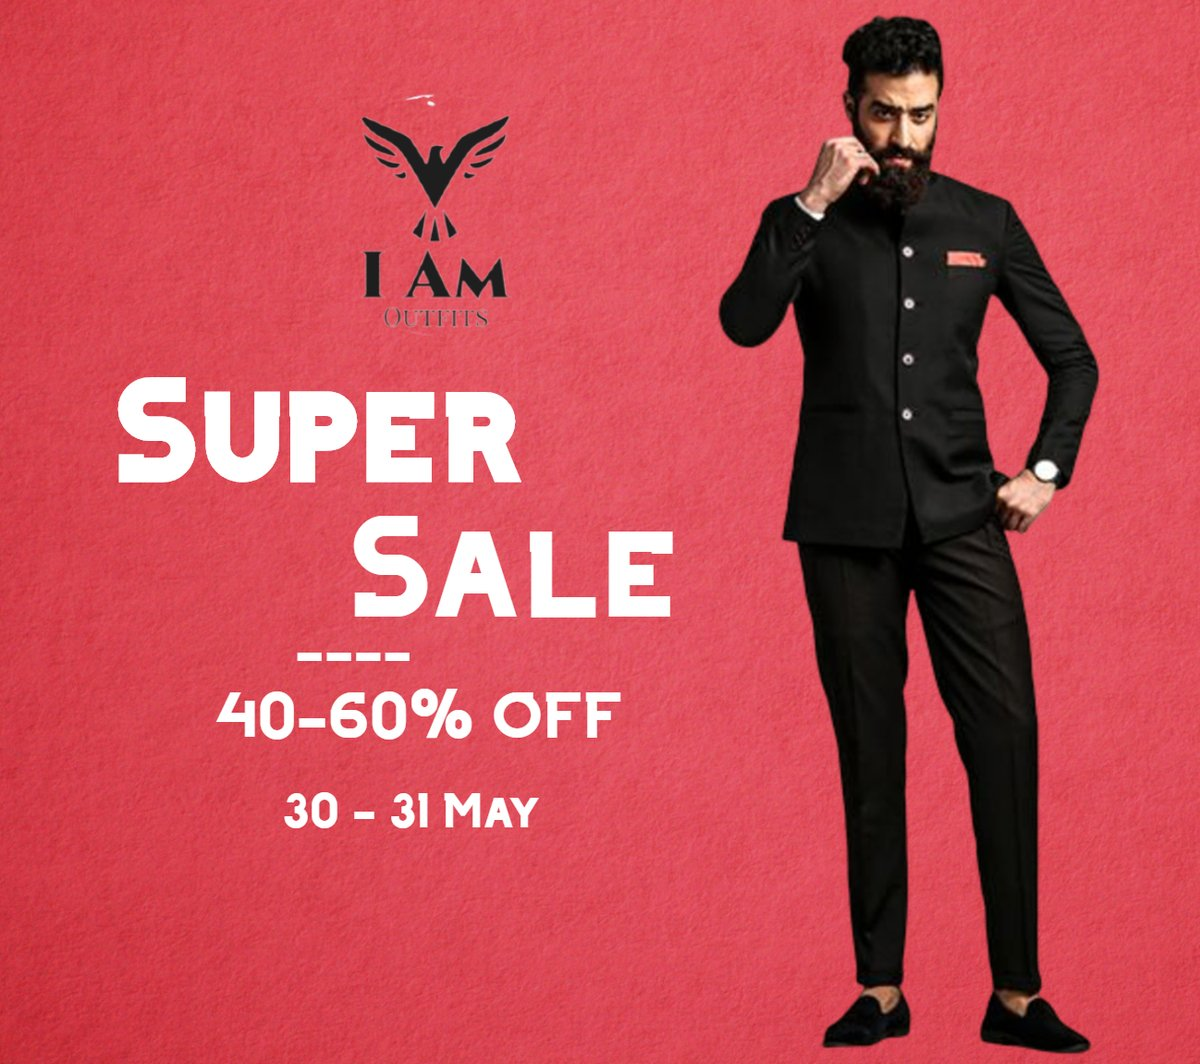 All fashions cloths, SUPER SALE 40-60% OFF  ON 30 - 31 May  DONT  MISS IT.....  #iamoutfits #supersale #summer2020pic.twitter.com/SIRyHeSpbB